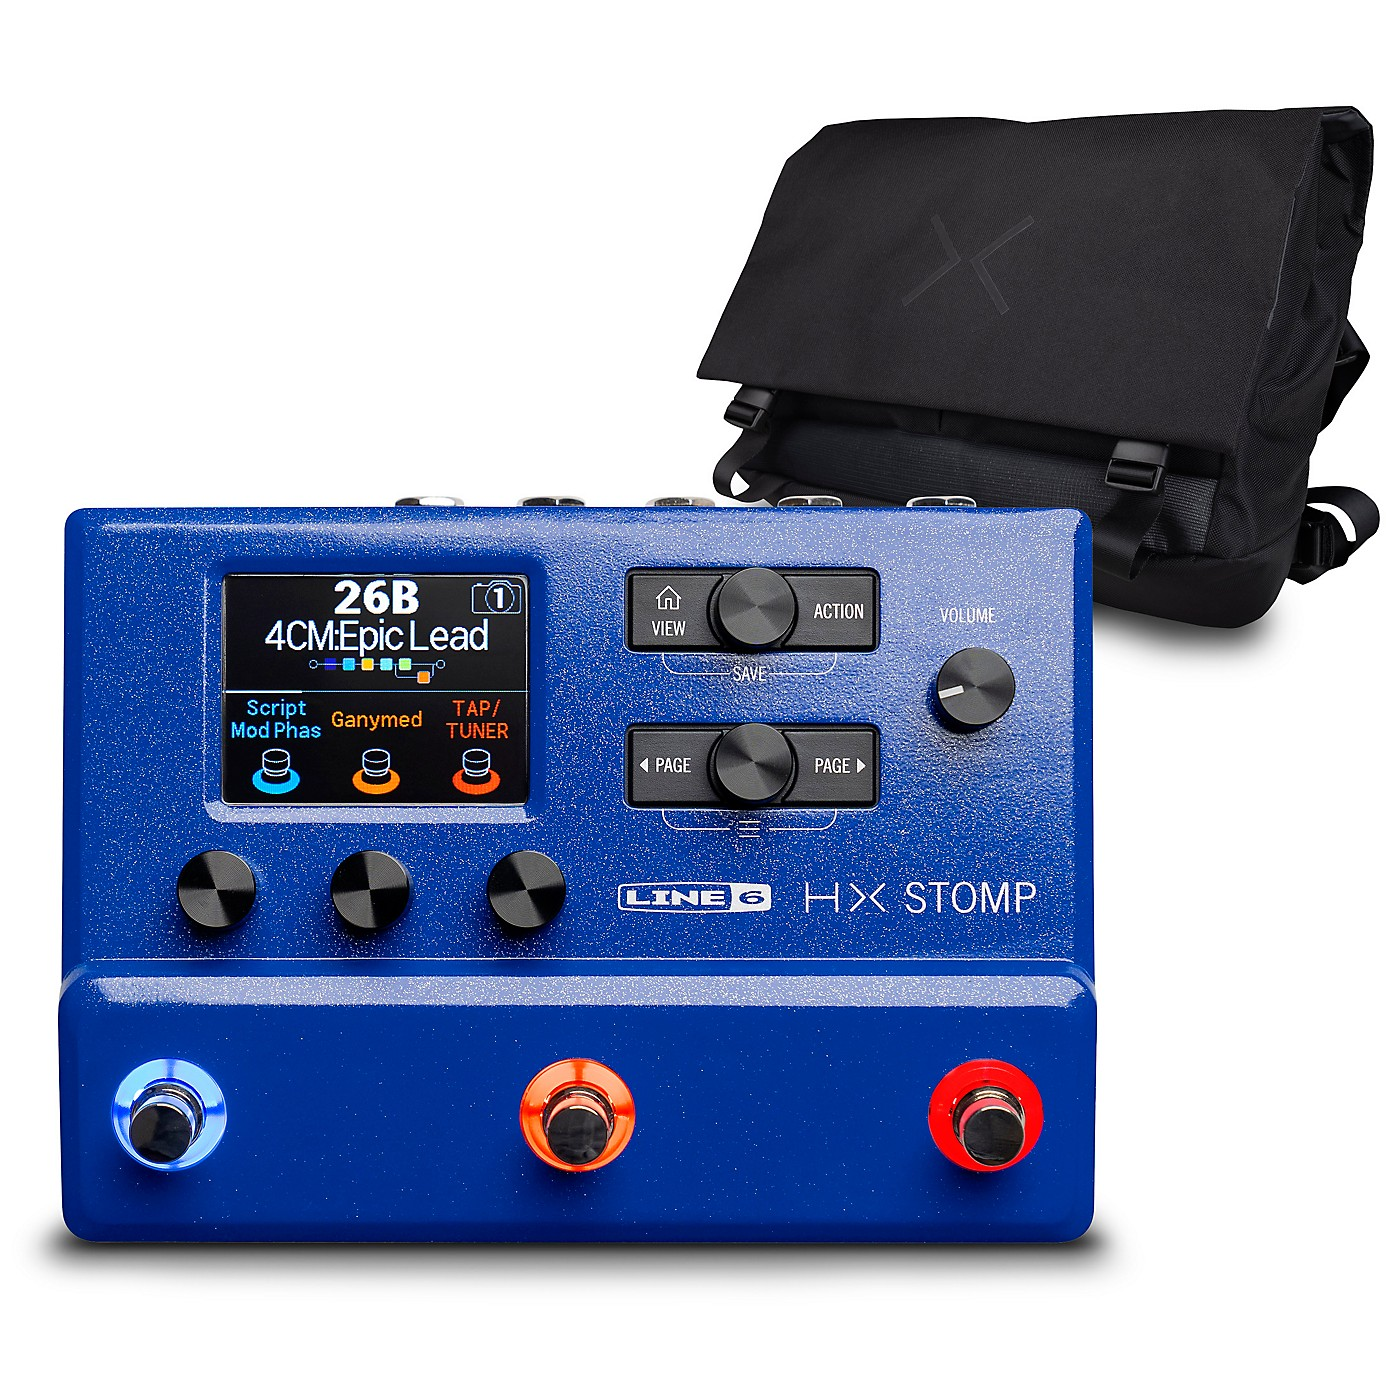 Line 6 HX Stomp Limited Edition Multi-Effects Pedal-Lightning Blue with HX Messenger Bag thumbnail